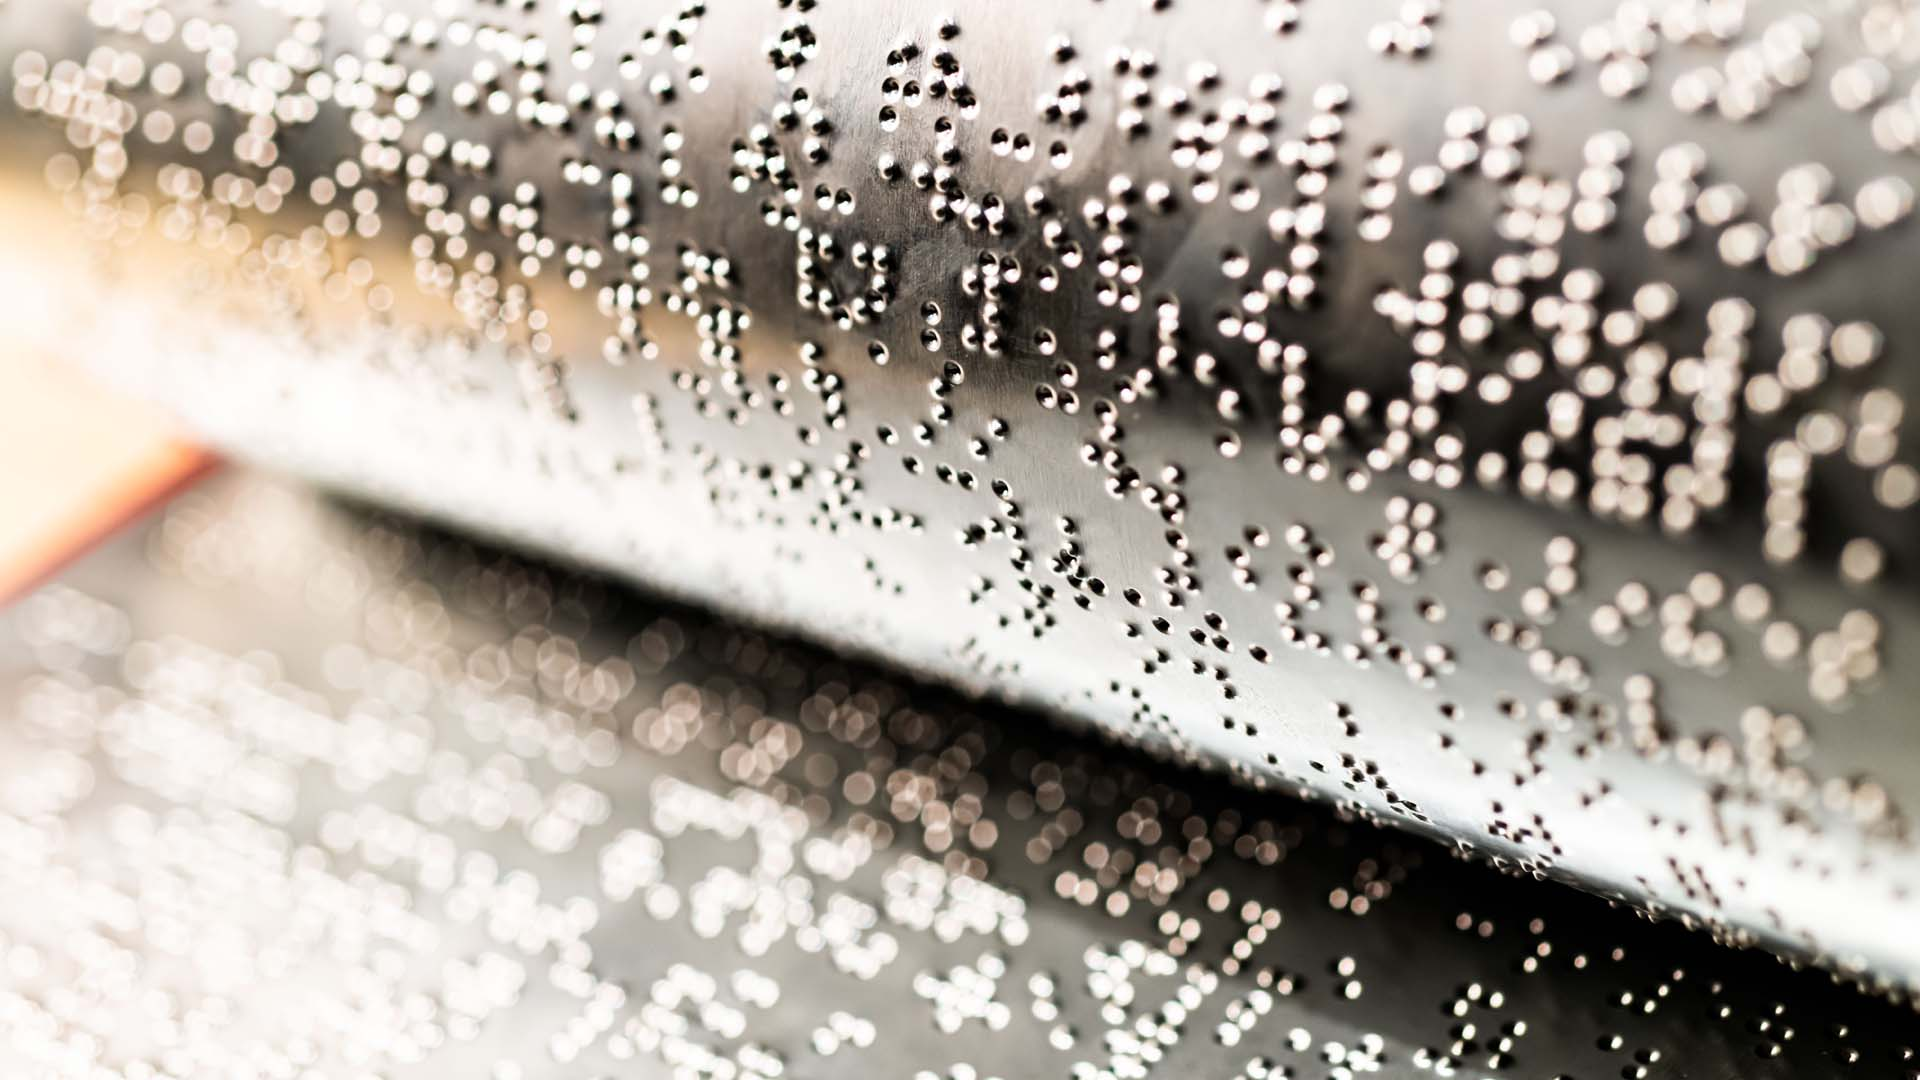 Closeup view of metal embossing plates covered with braille symbols